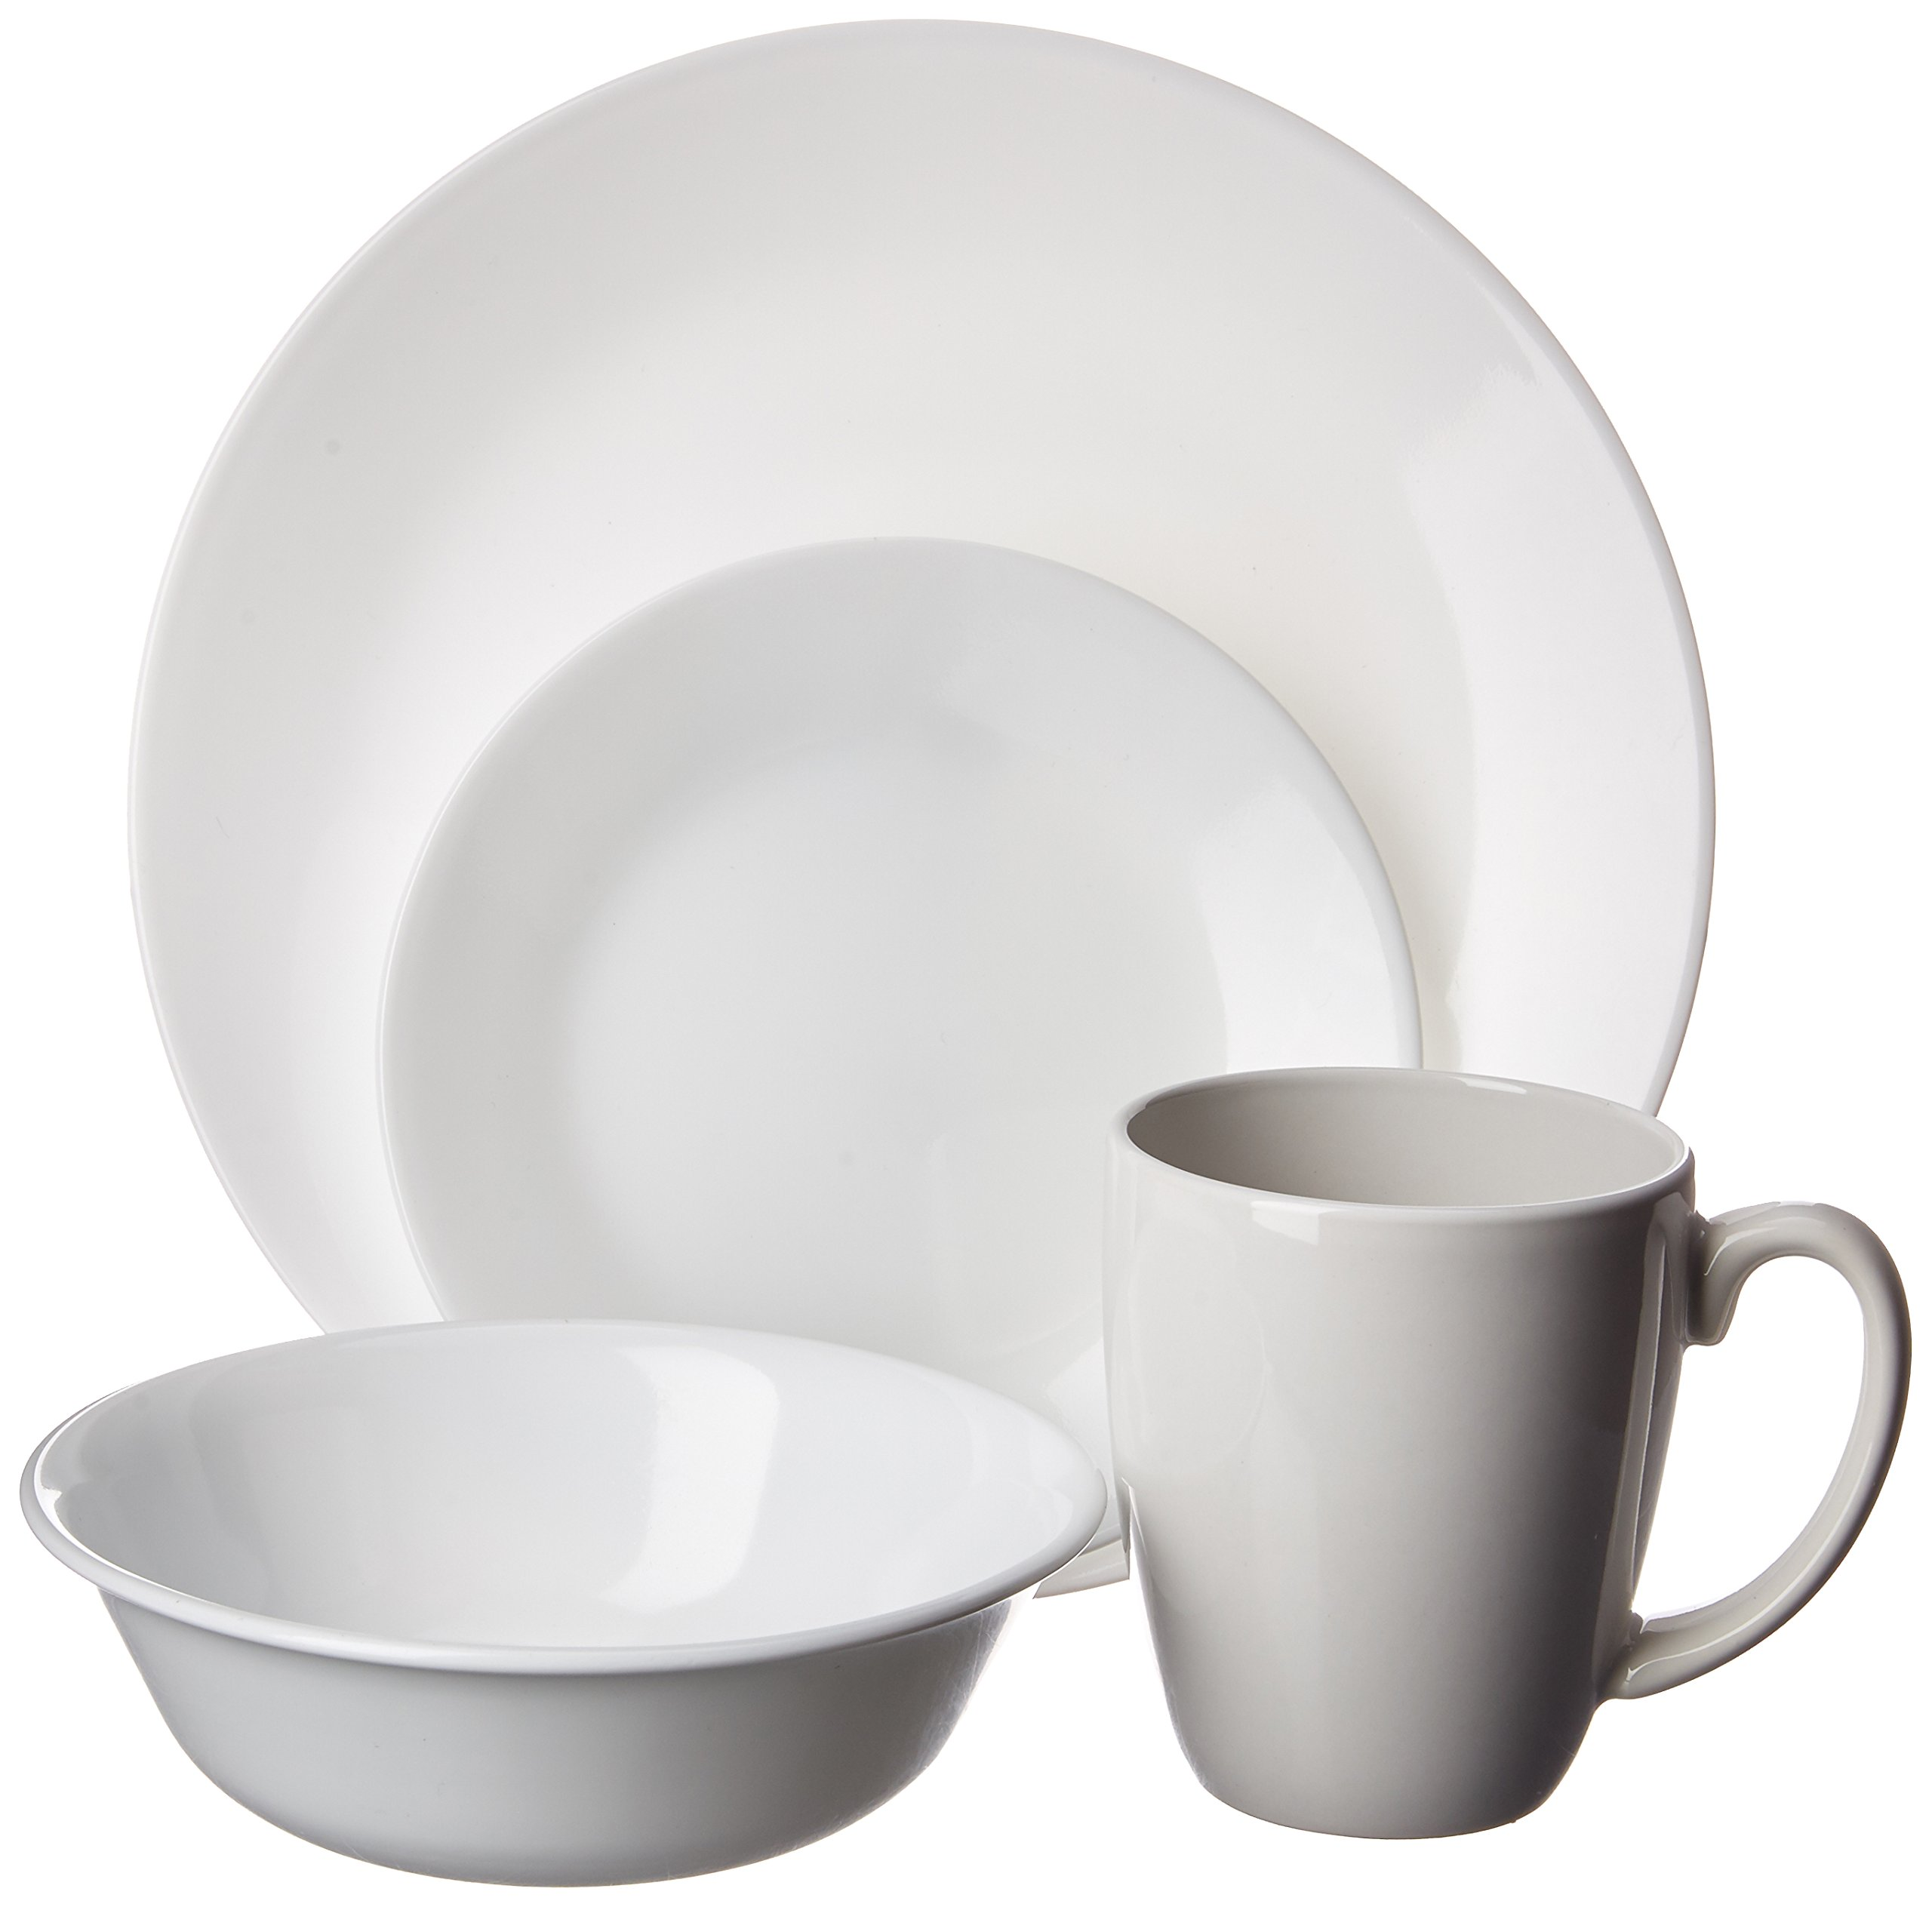 Galleon Corelle Livingware 16 Piece Dinnerware Set